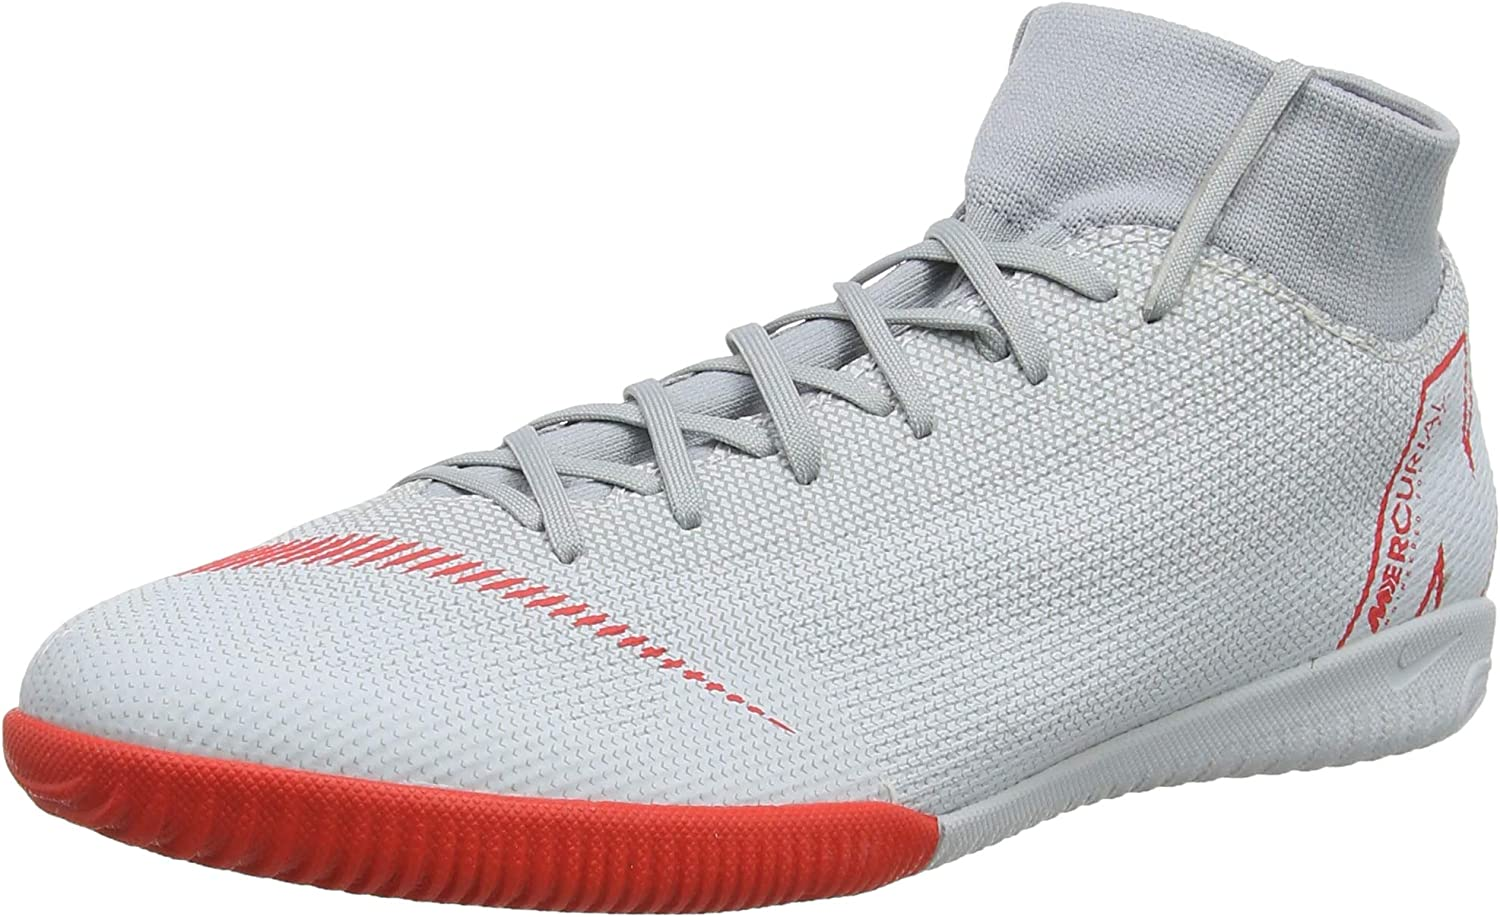 Nike Unisex Adults' Mercurial Vaporx XII Academy Indoor Footbal shoes